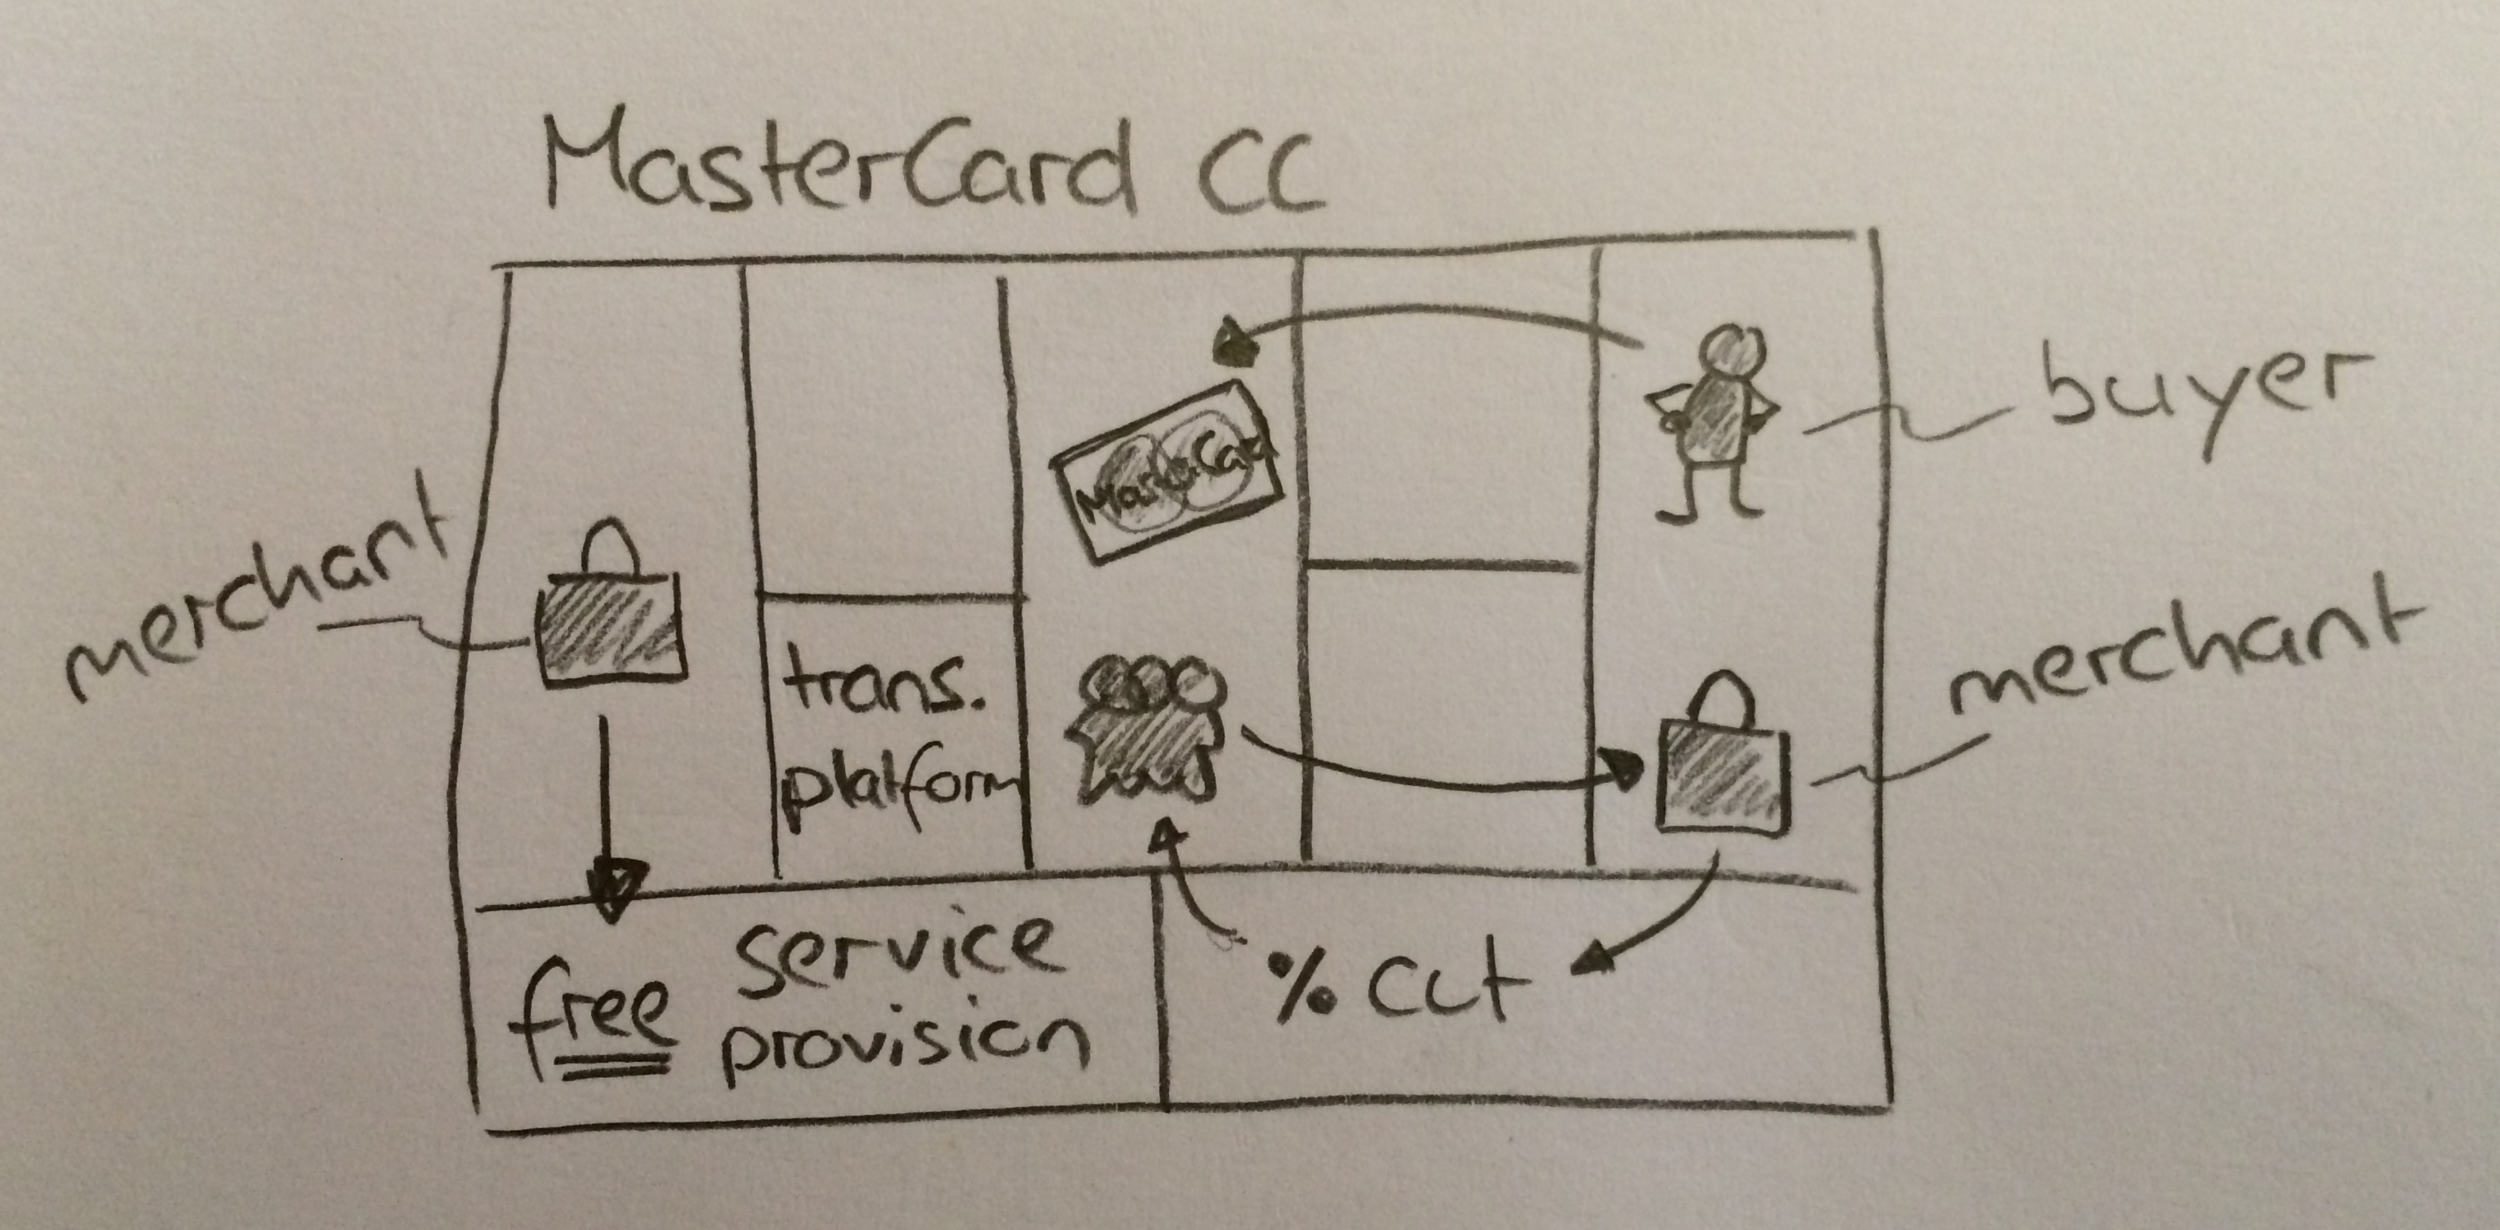 MasterCard-business-model.png